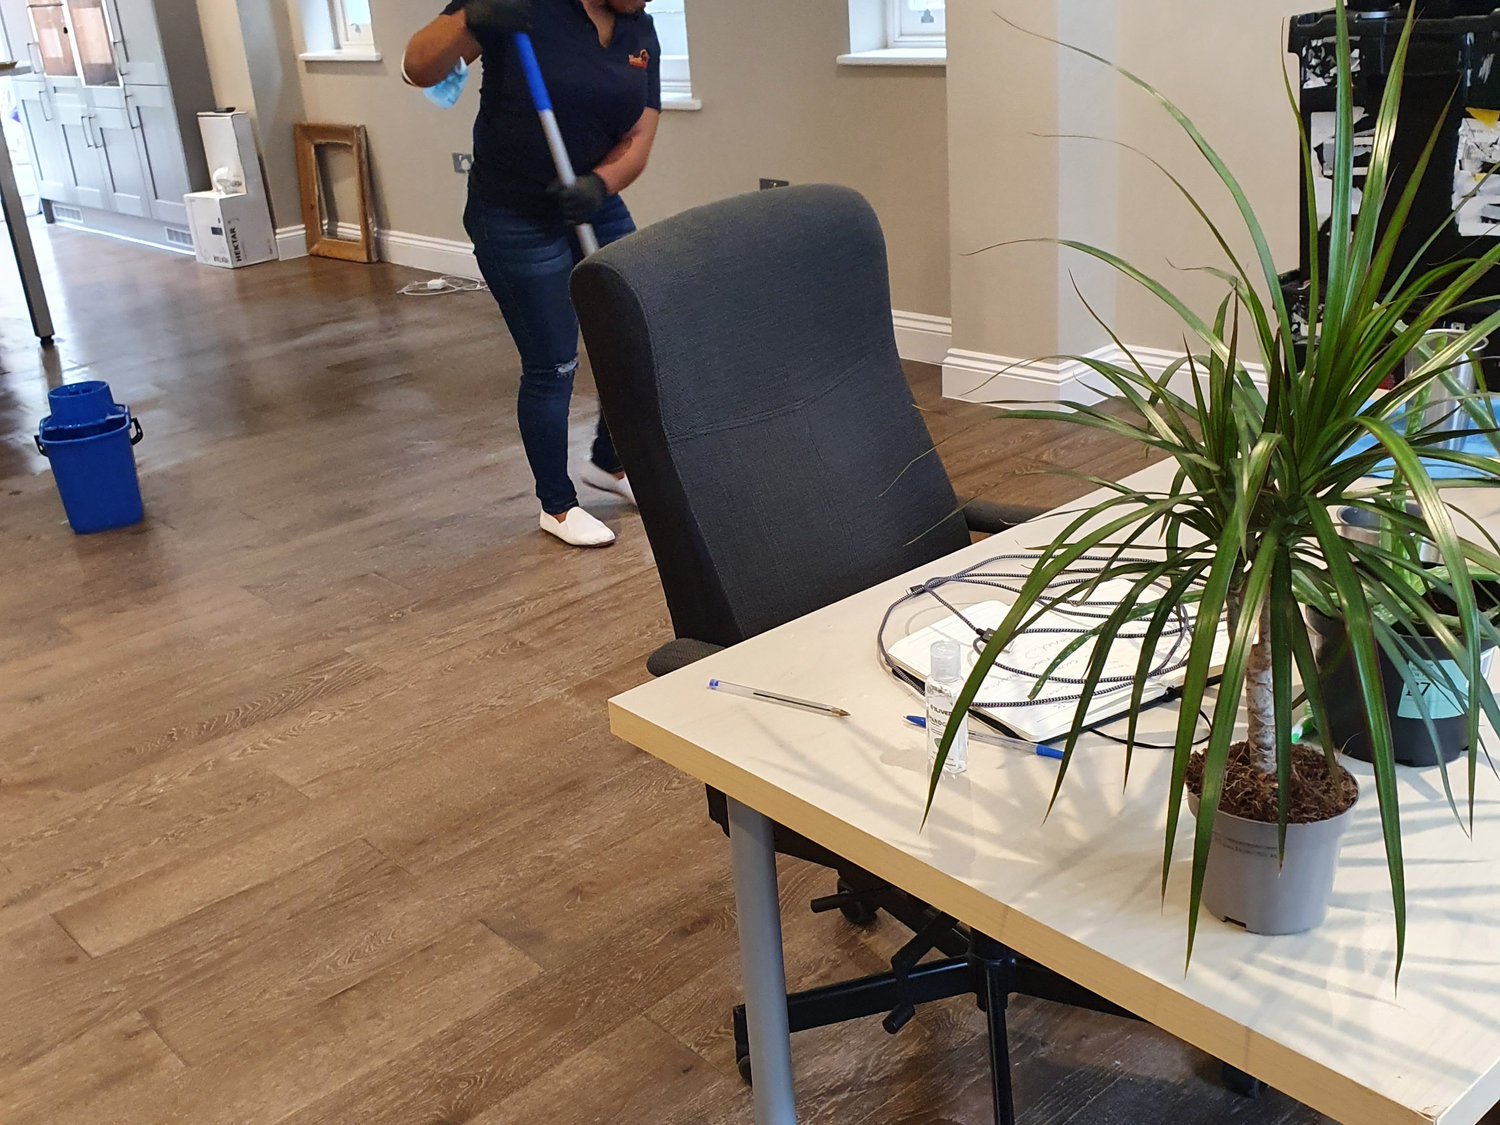 Commercial and residential cleaning